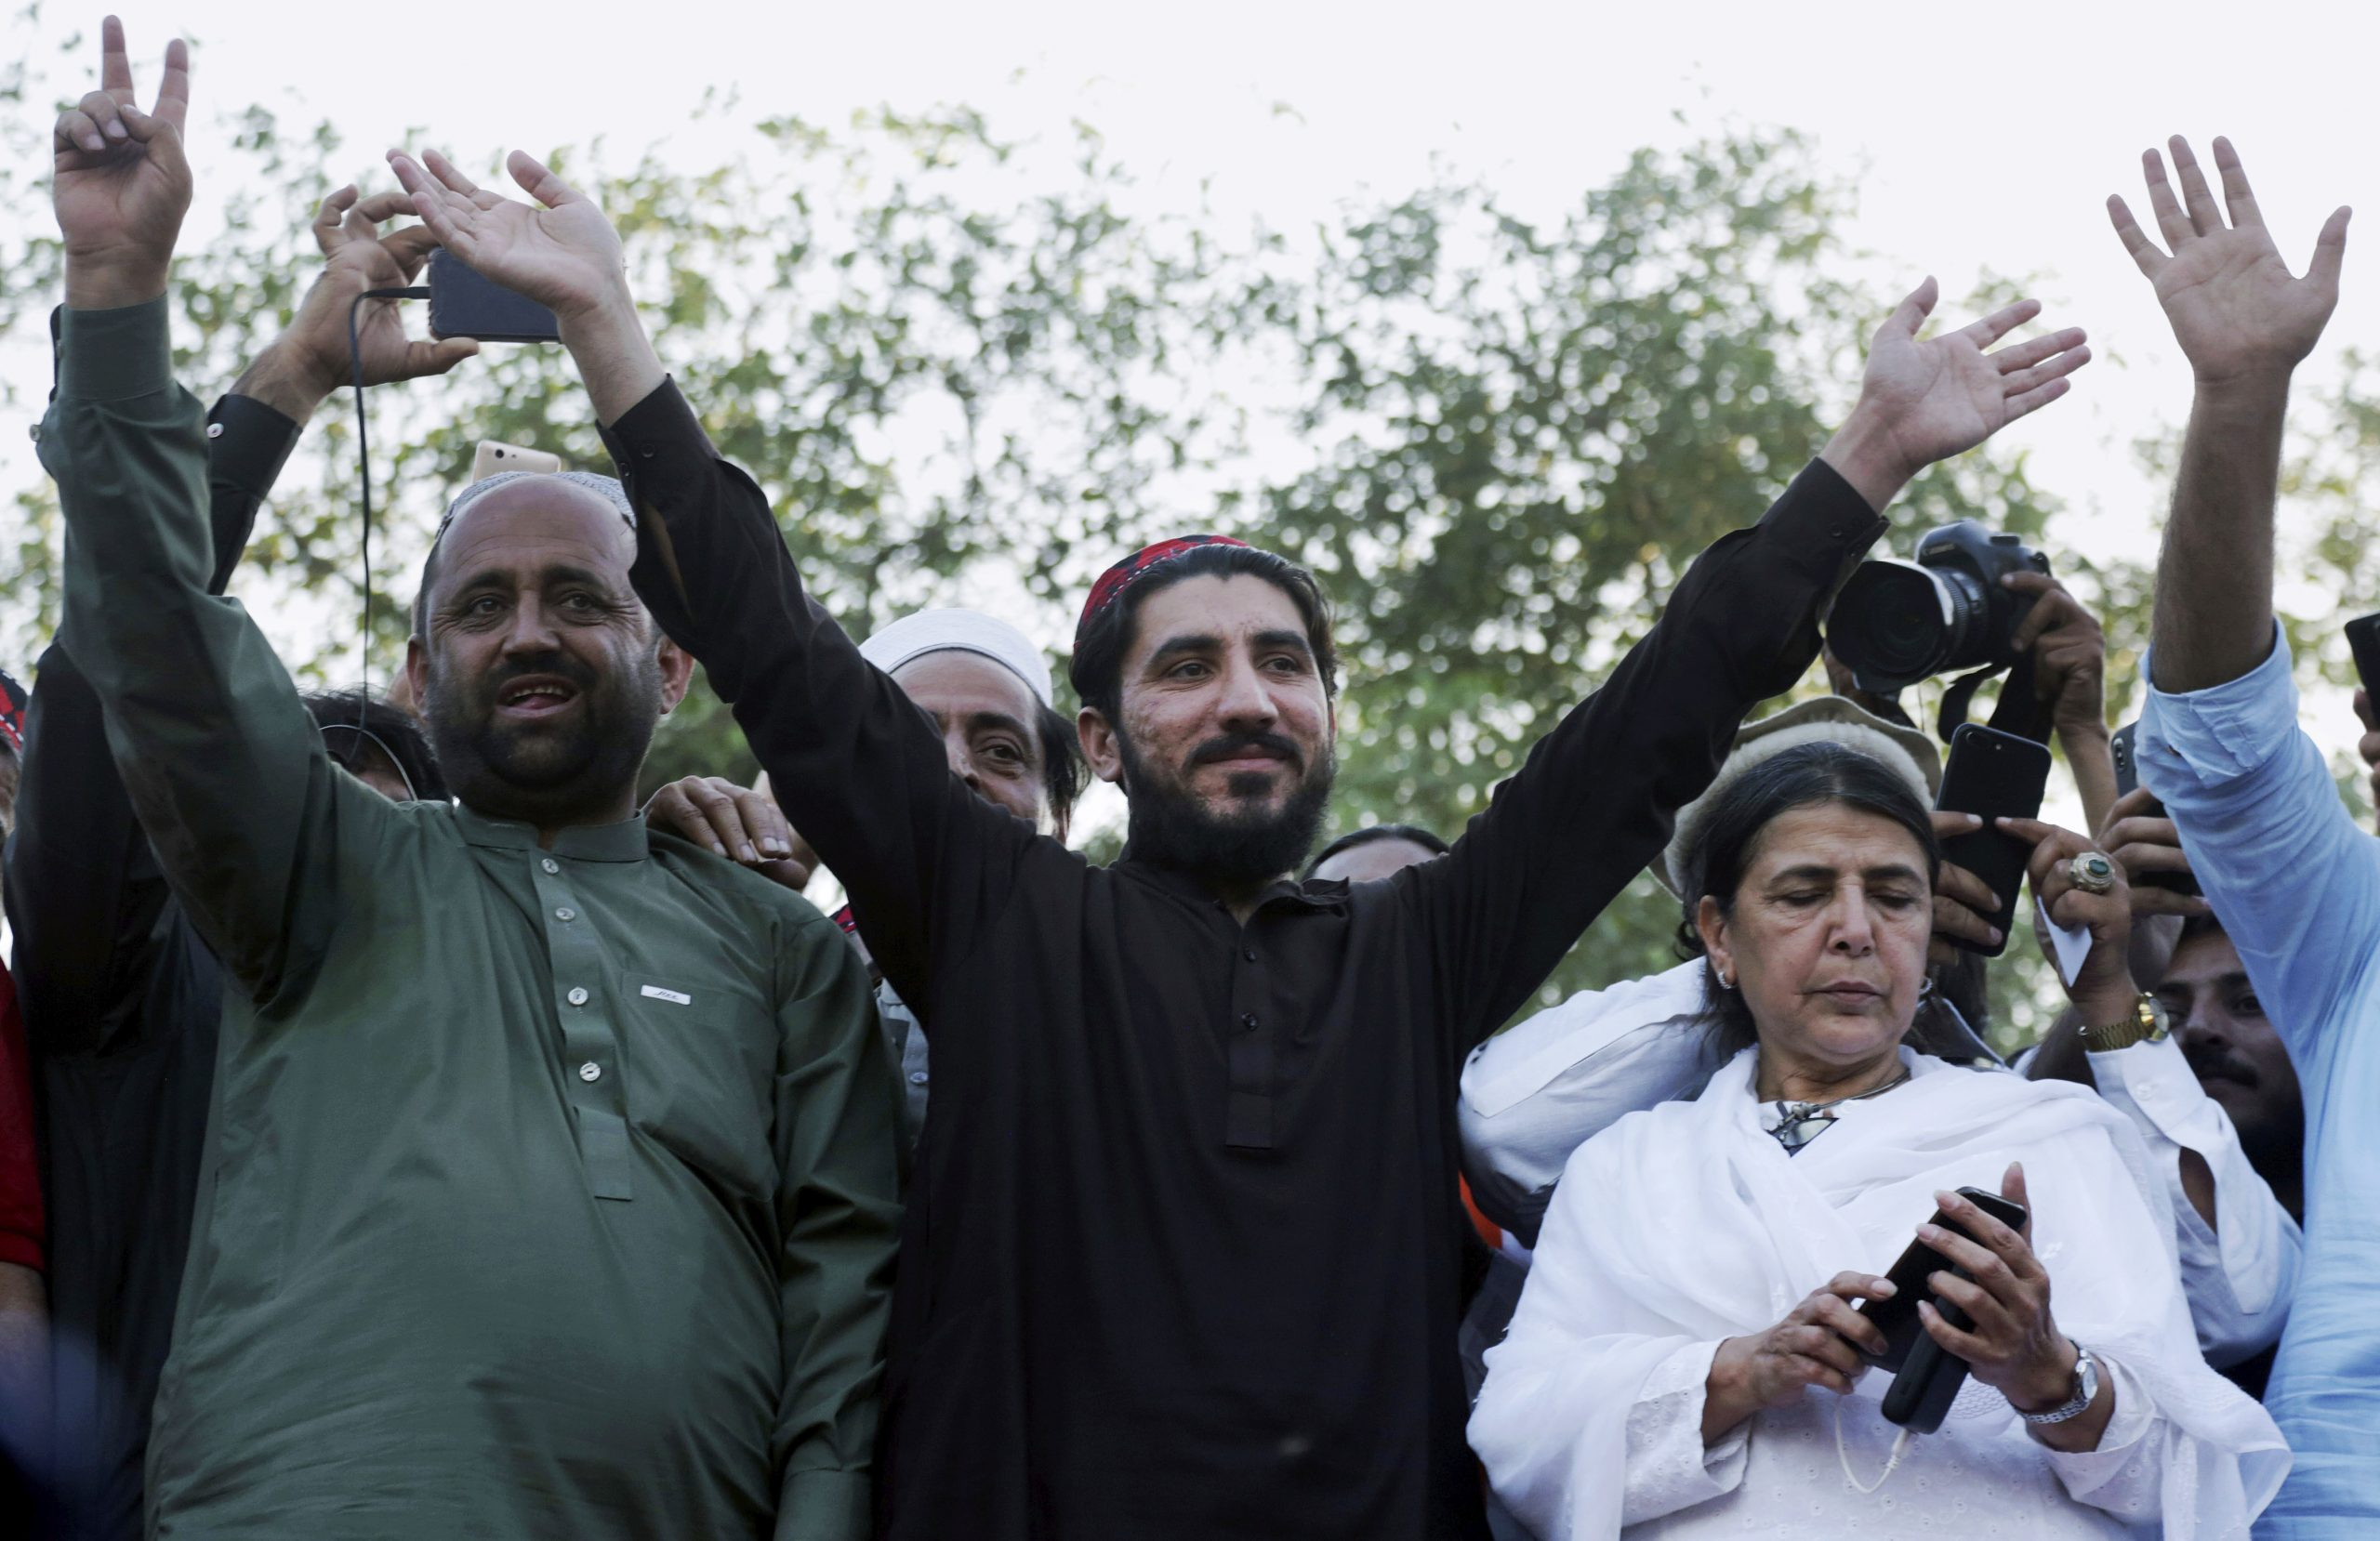 Pakistan arrests a human rights leader who criticized the army's violations.